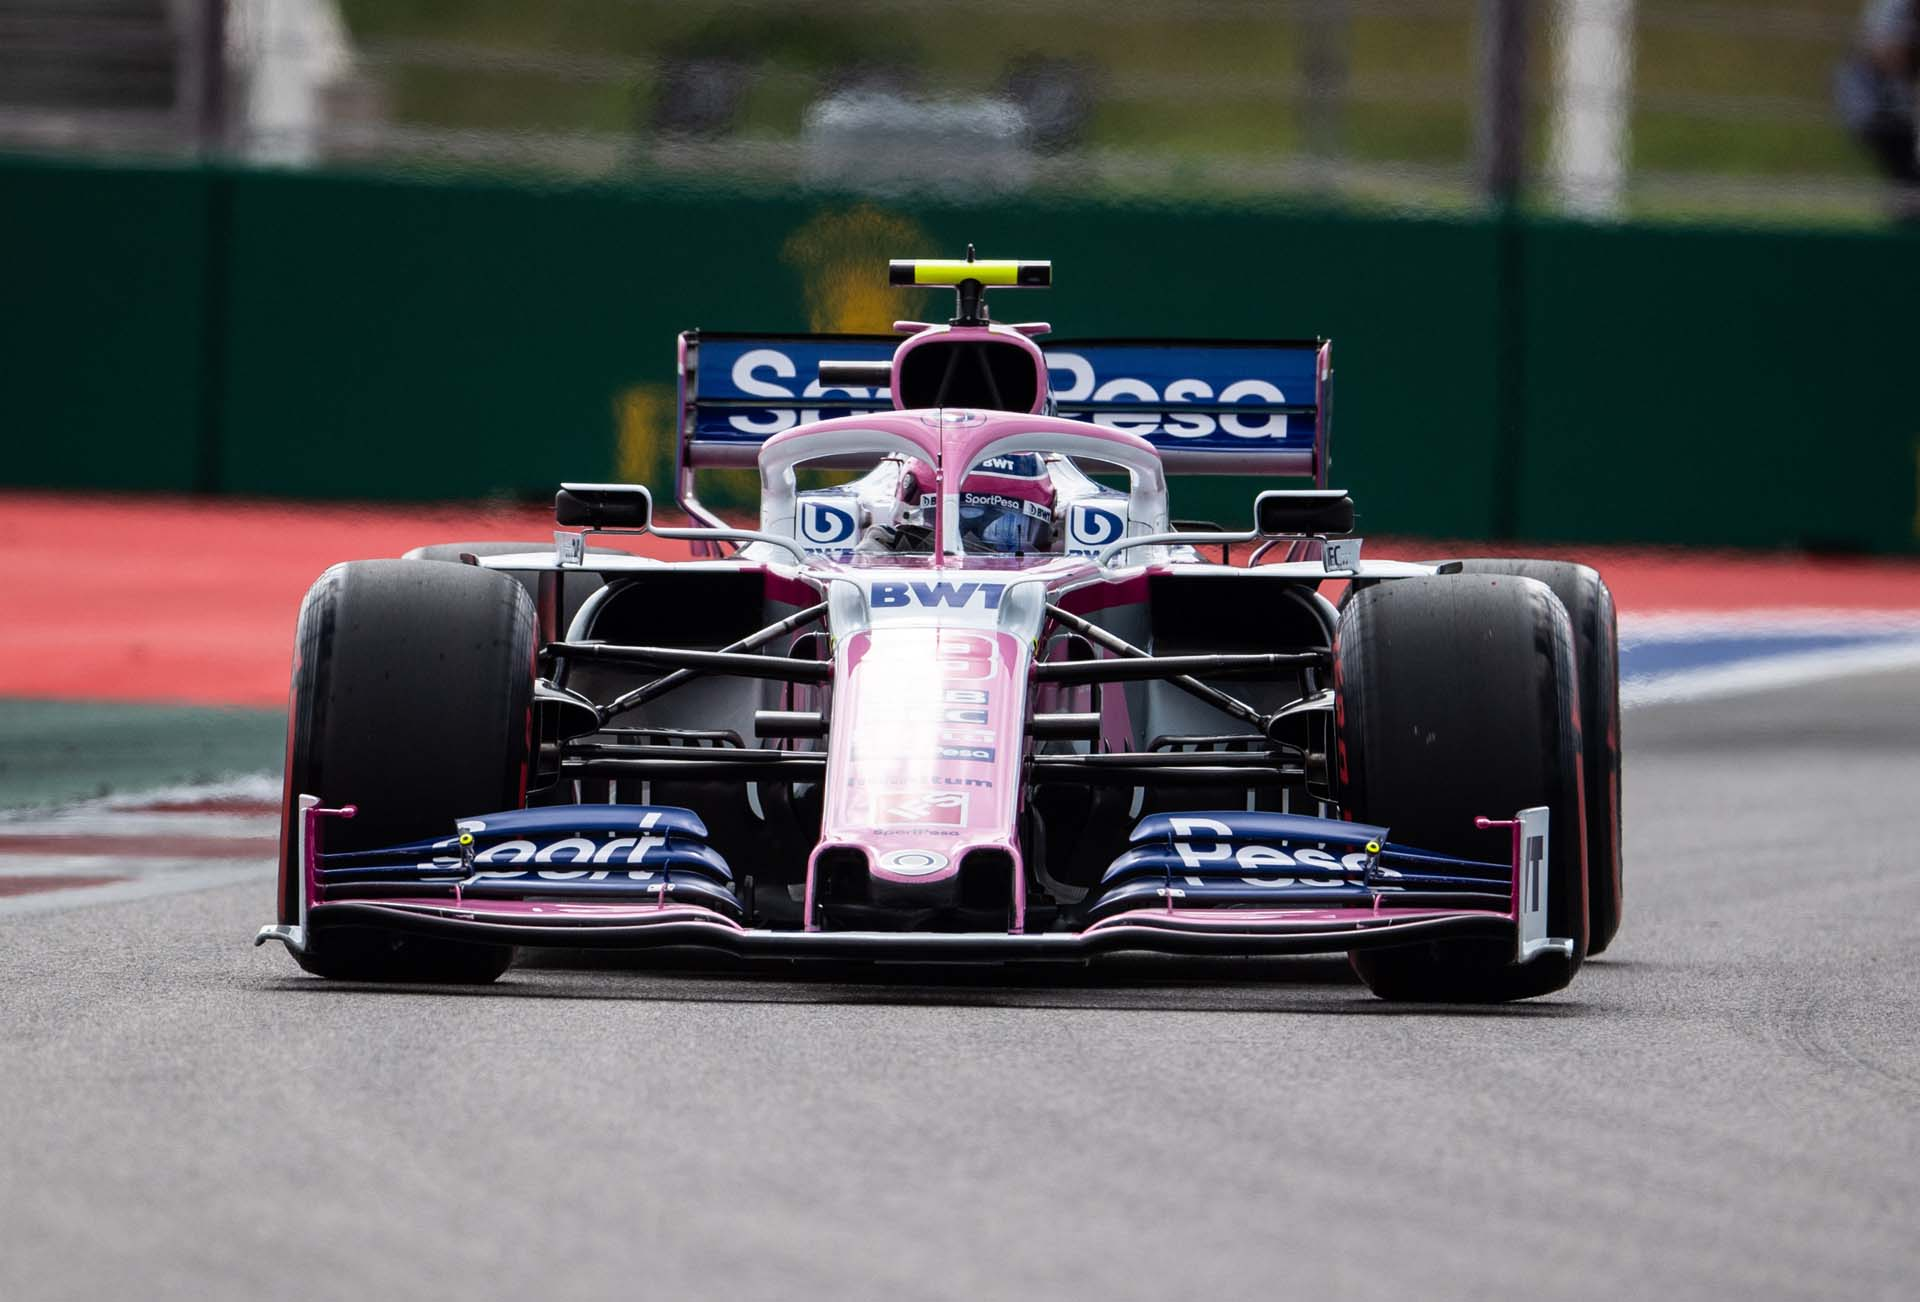 Lance Stroll, Racing Point RP19 during FP3